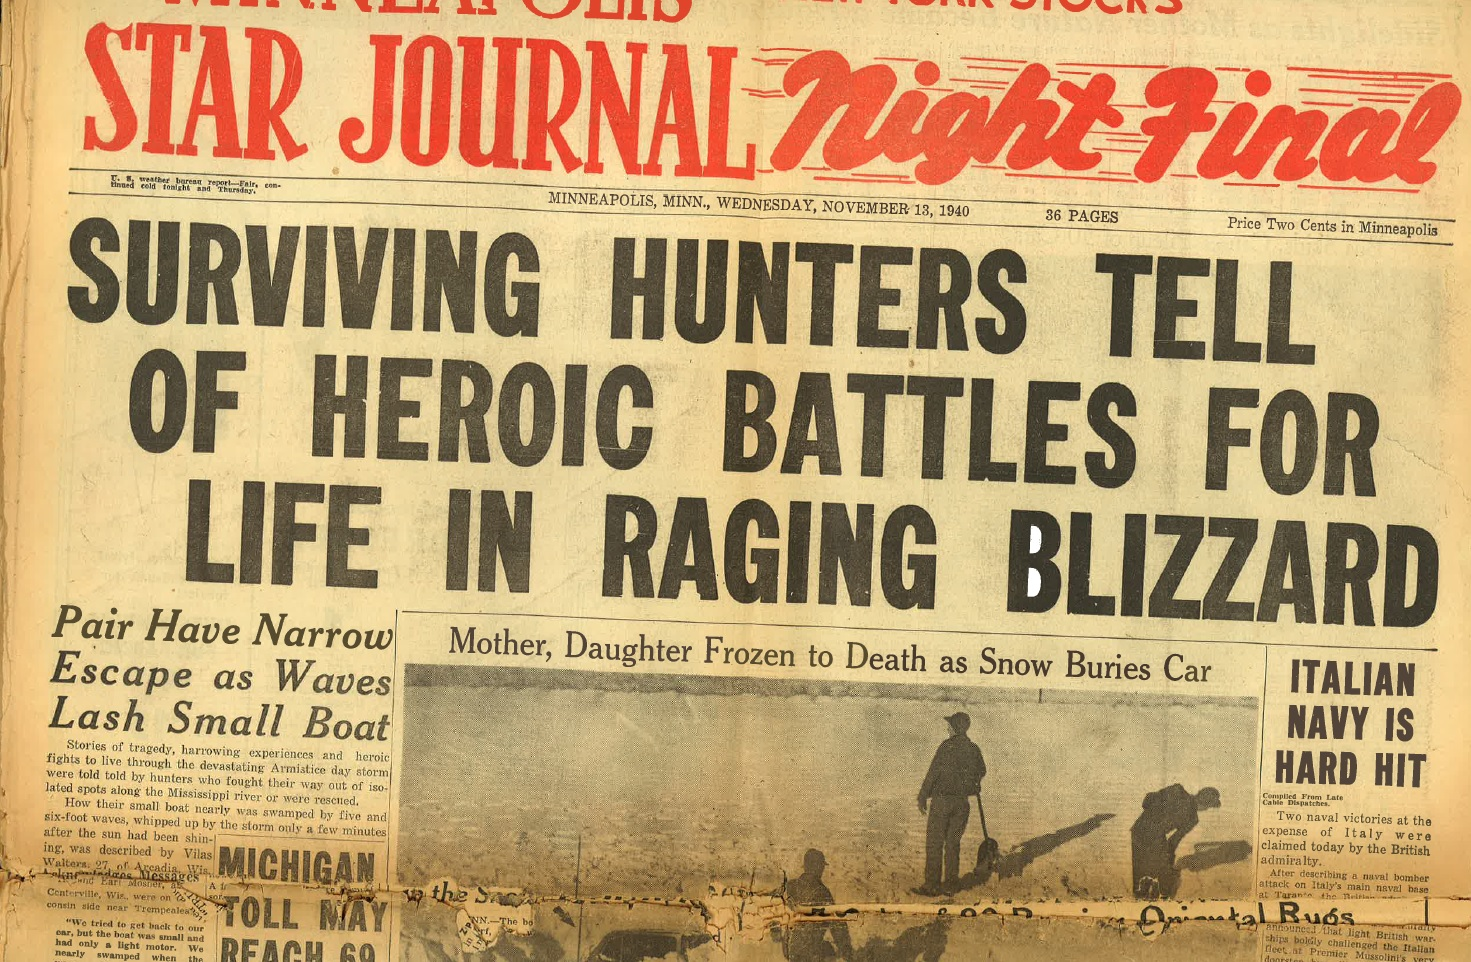 Minneapolis Star Journal Headline: November 13, 1940